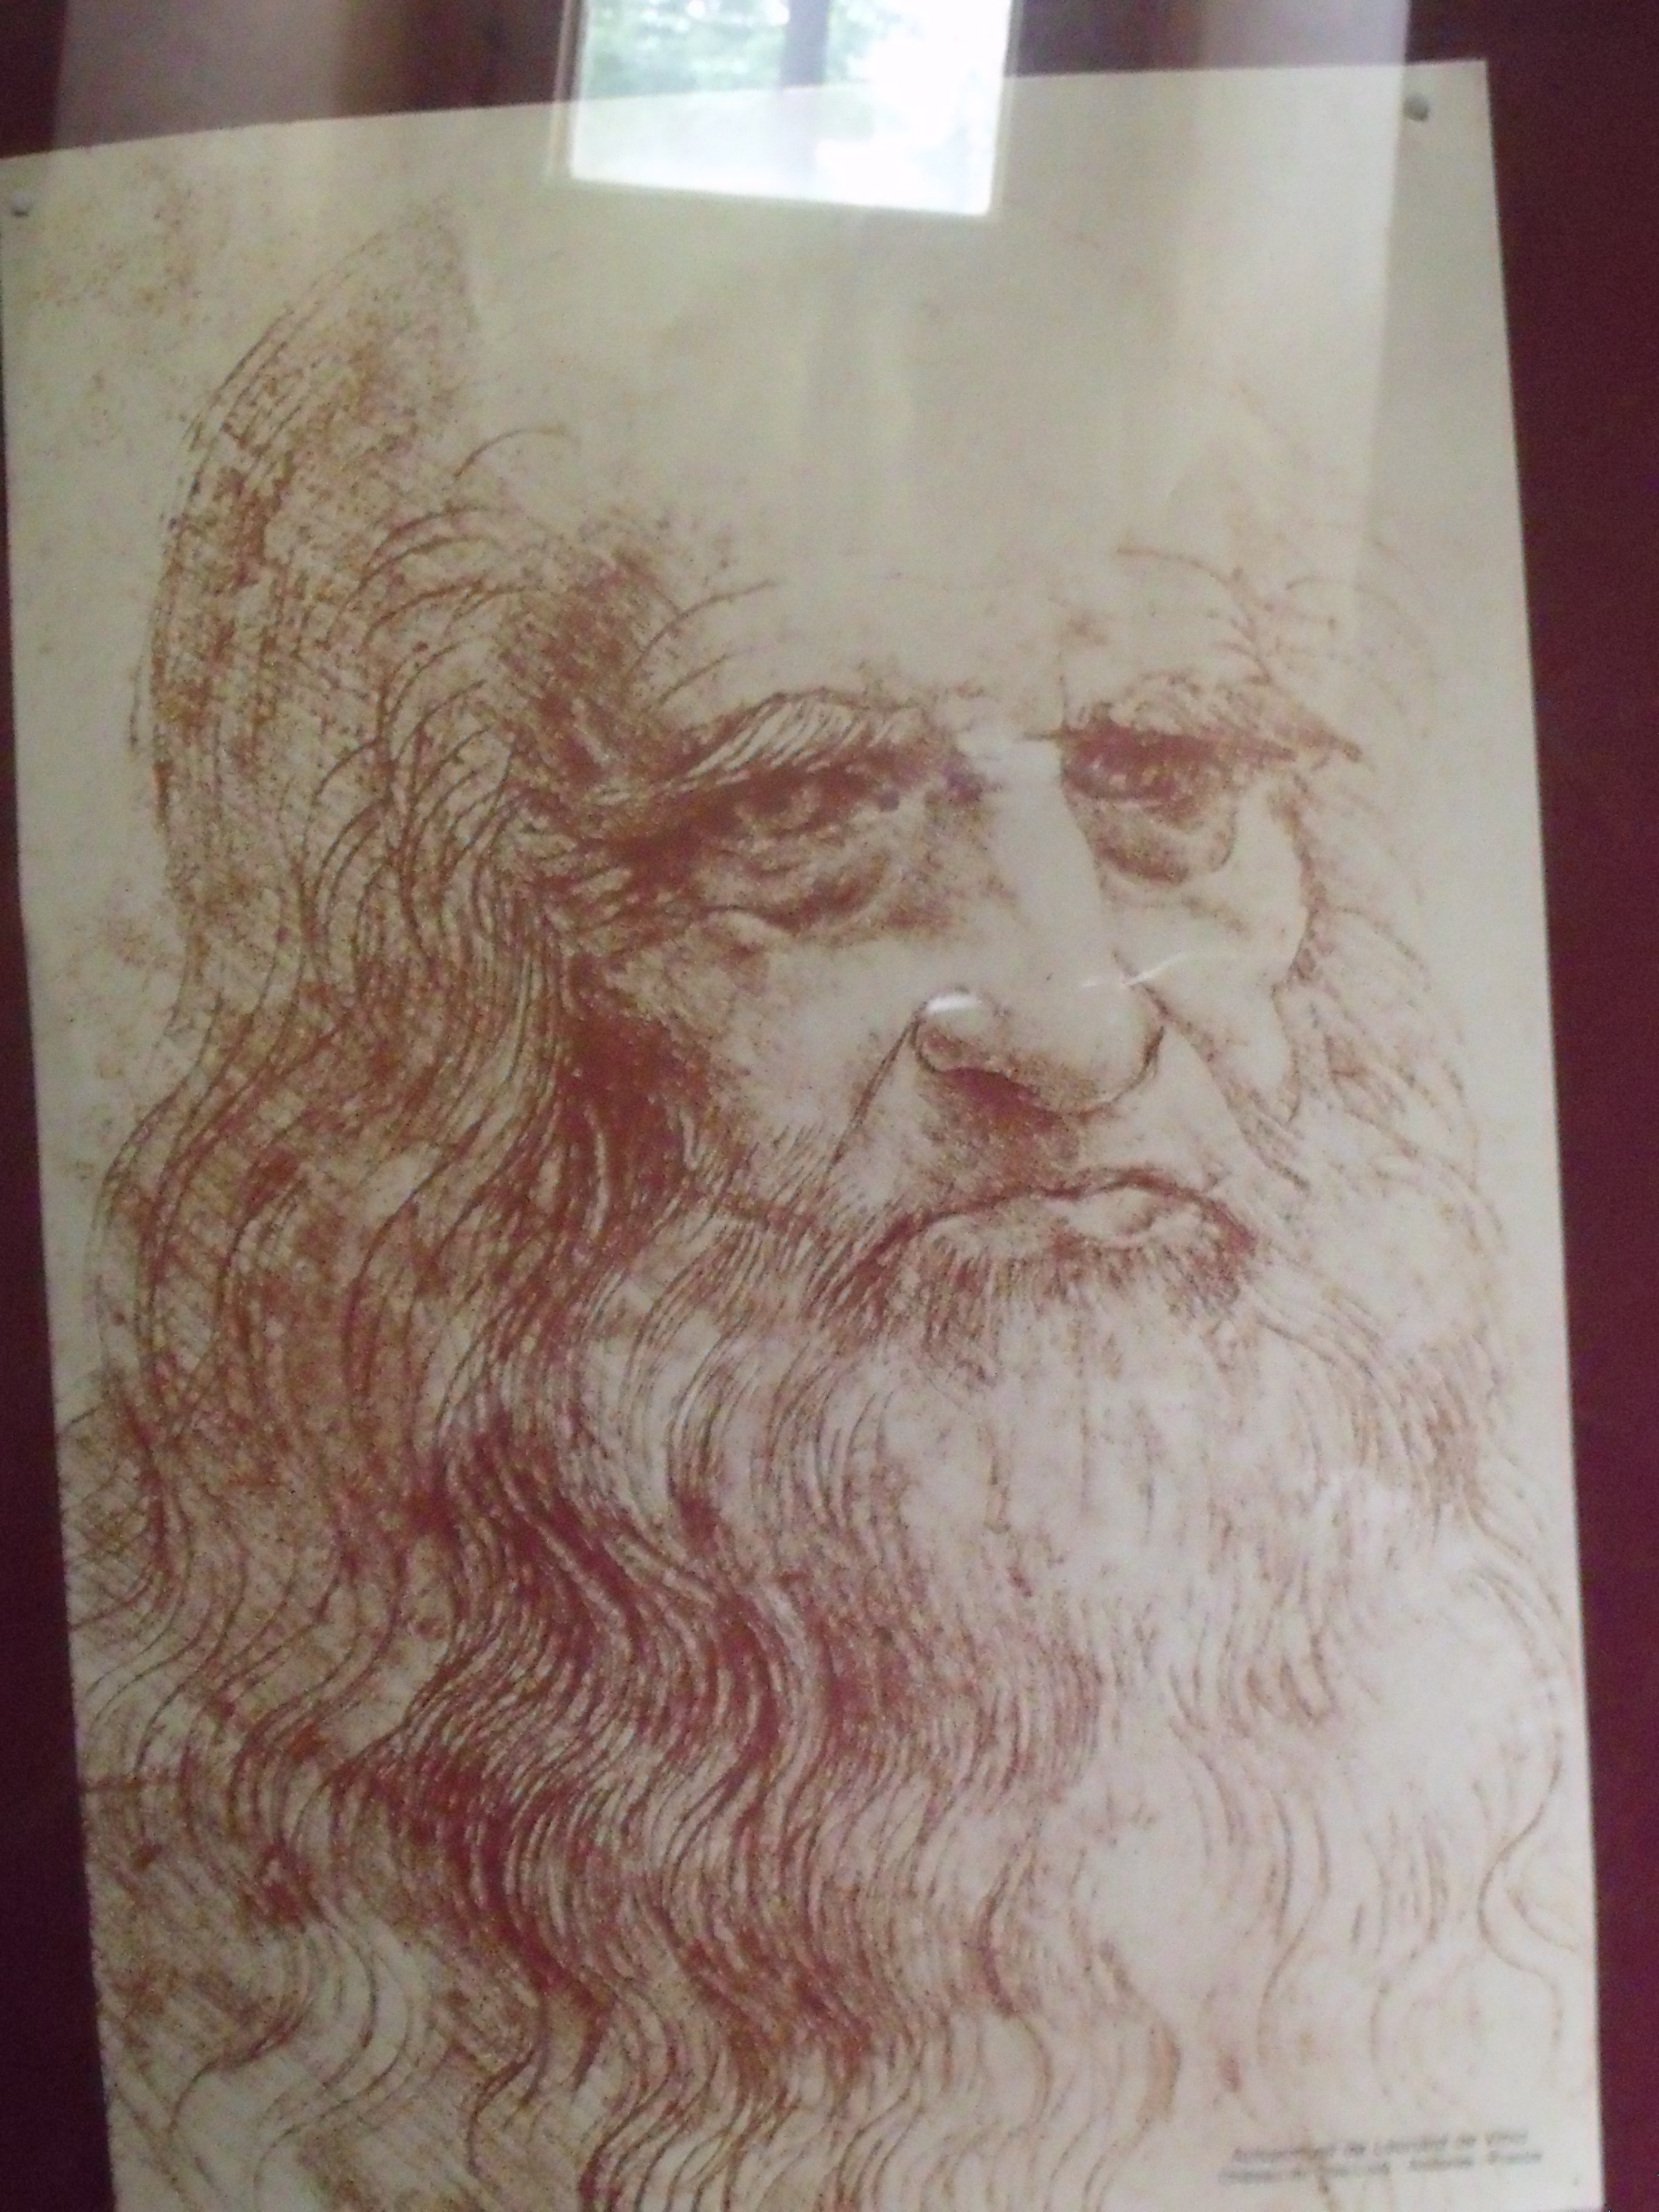 leonardo da vinci facts and questions by nyanit duol